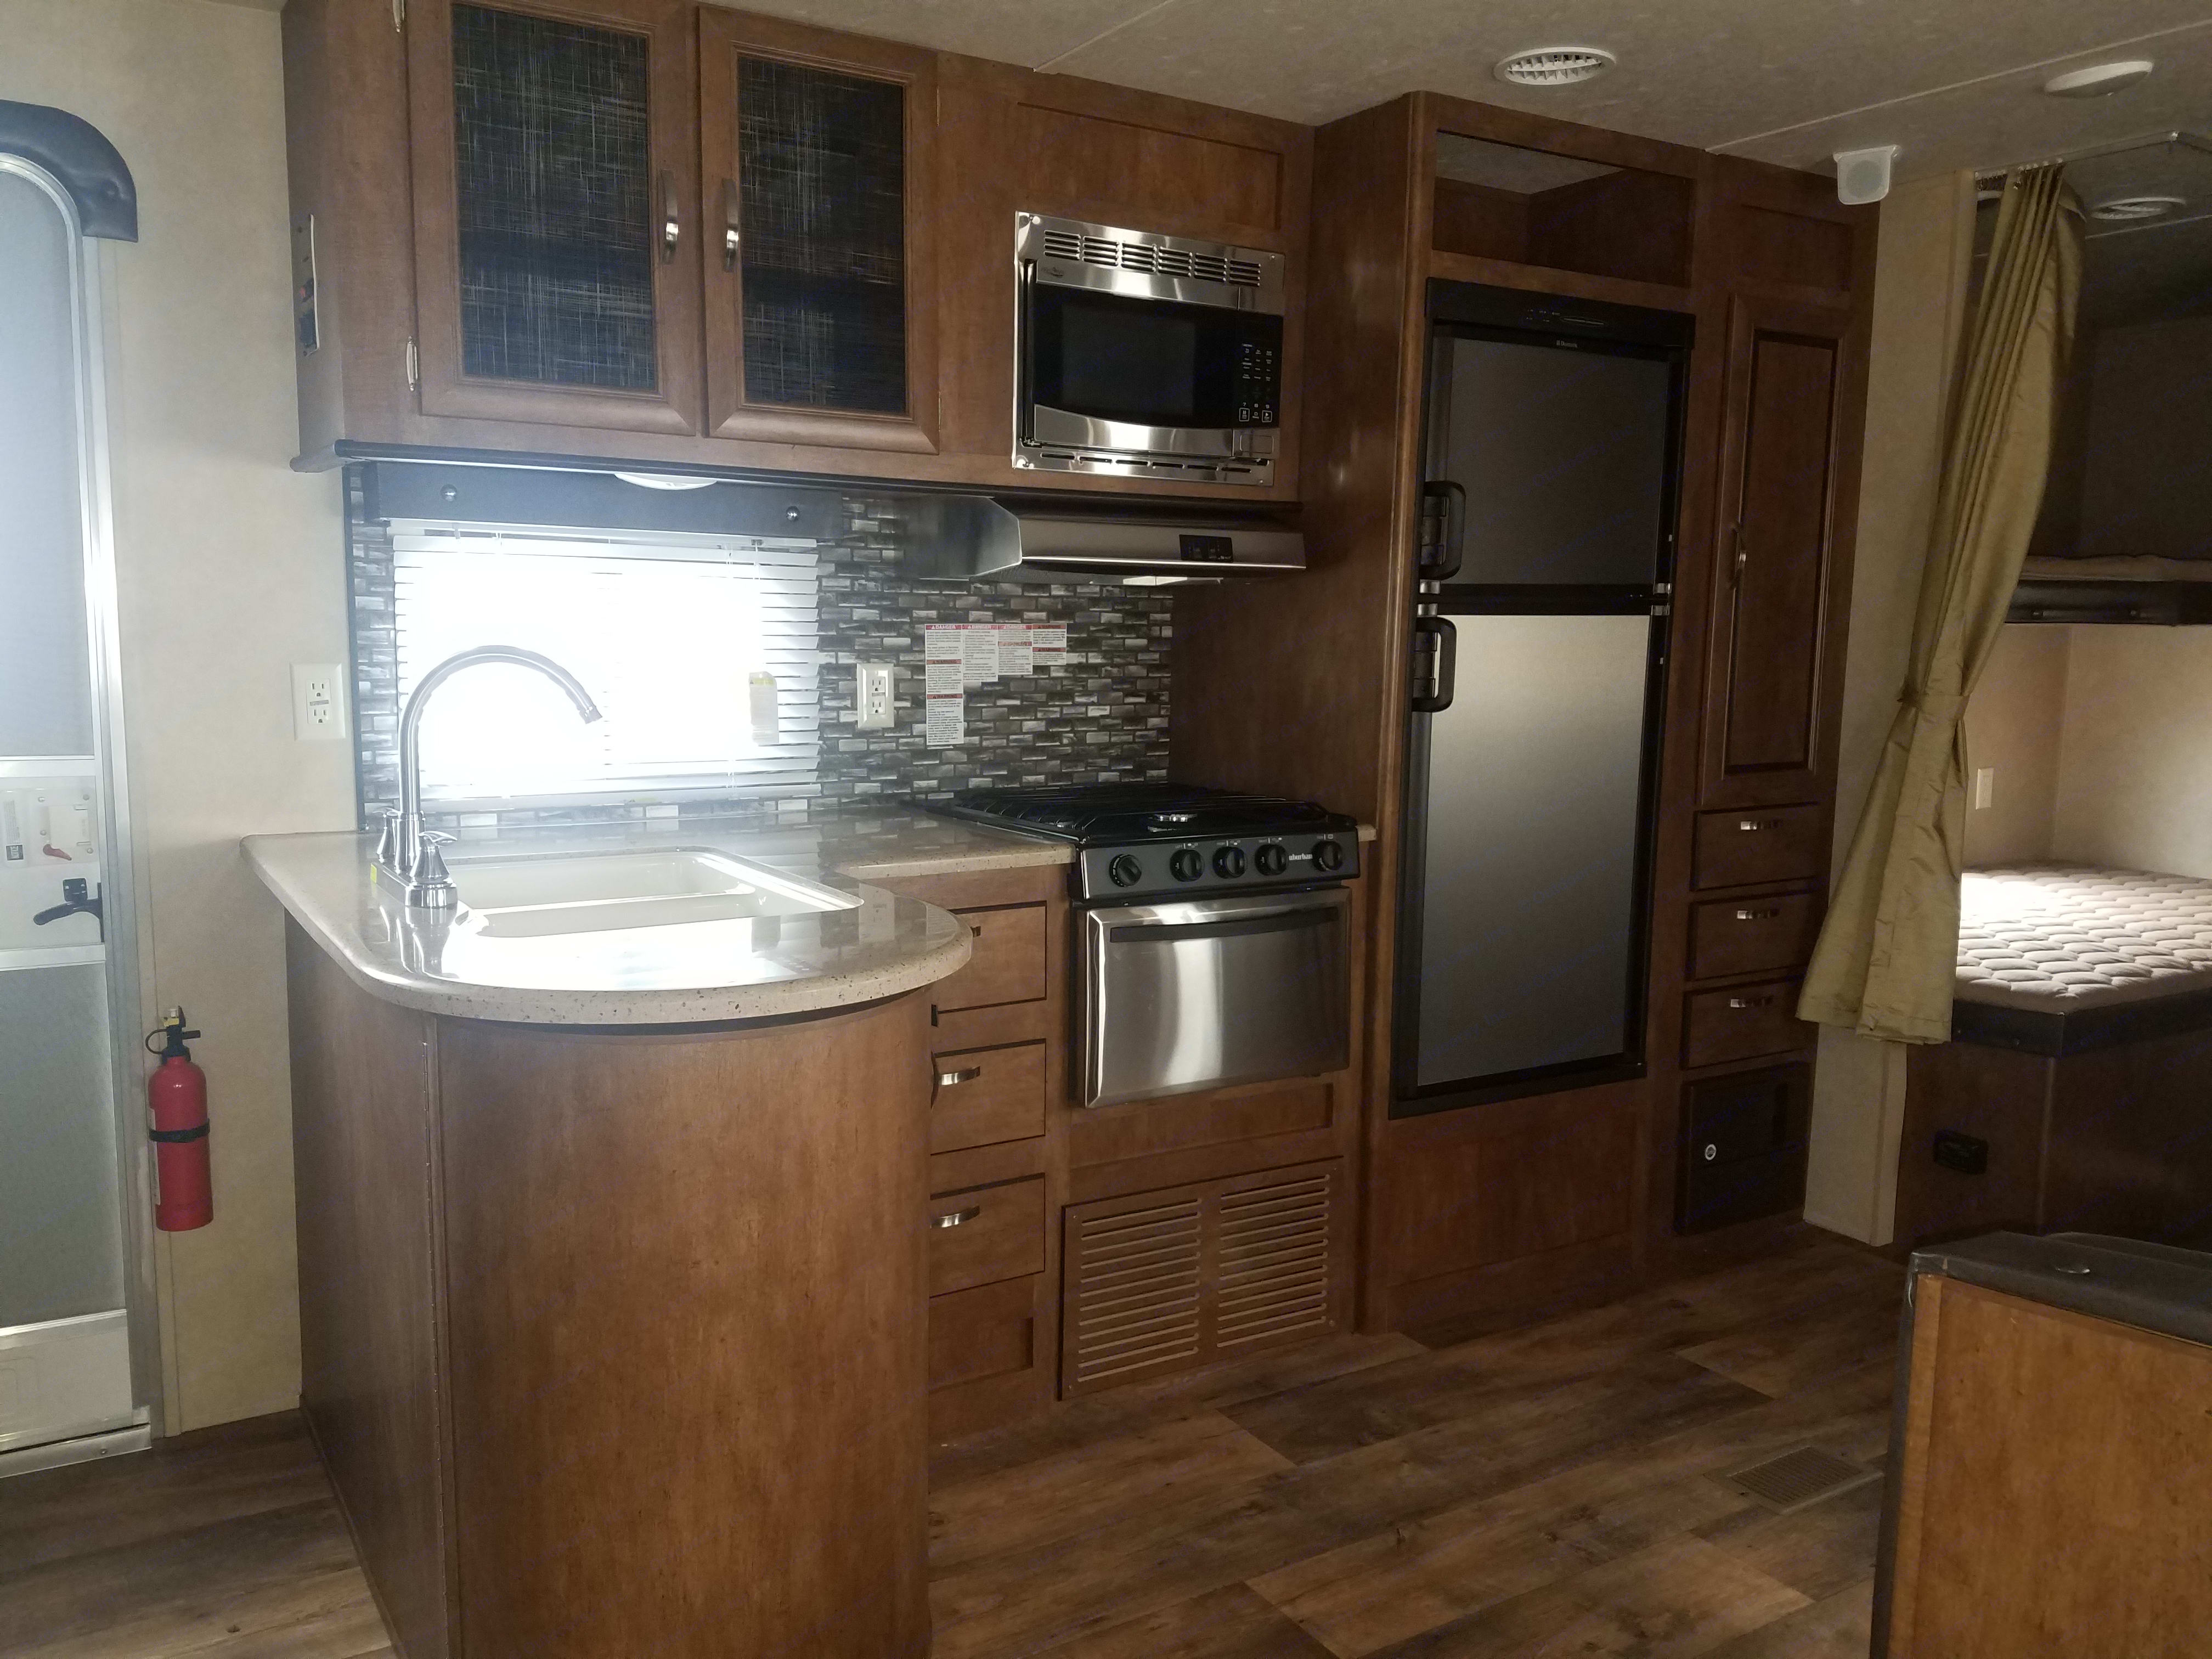 Kitchen with a double sink/microwave/fridge/stove/storage. Forest River Salem 2017